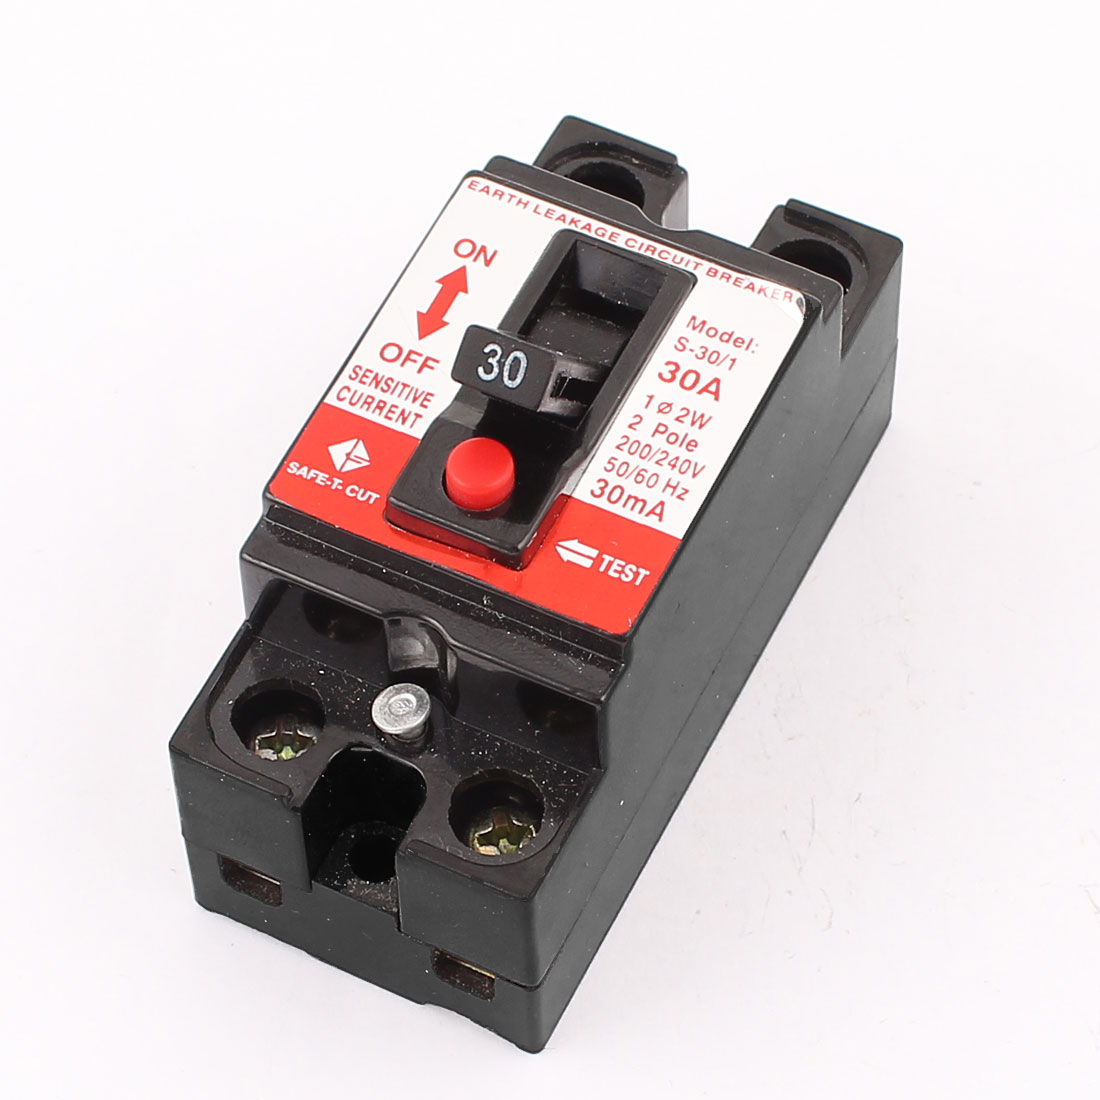 AC 200/240V 30A 2 Pole Earth Leakage Protection Circuit Breaker S-30/1